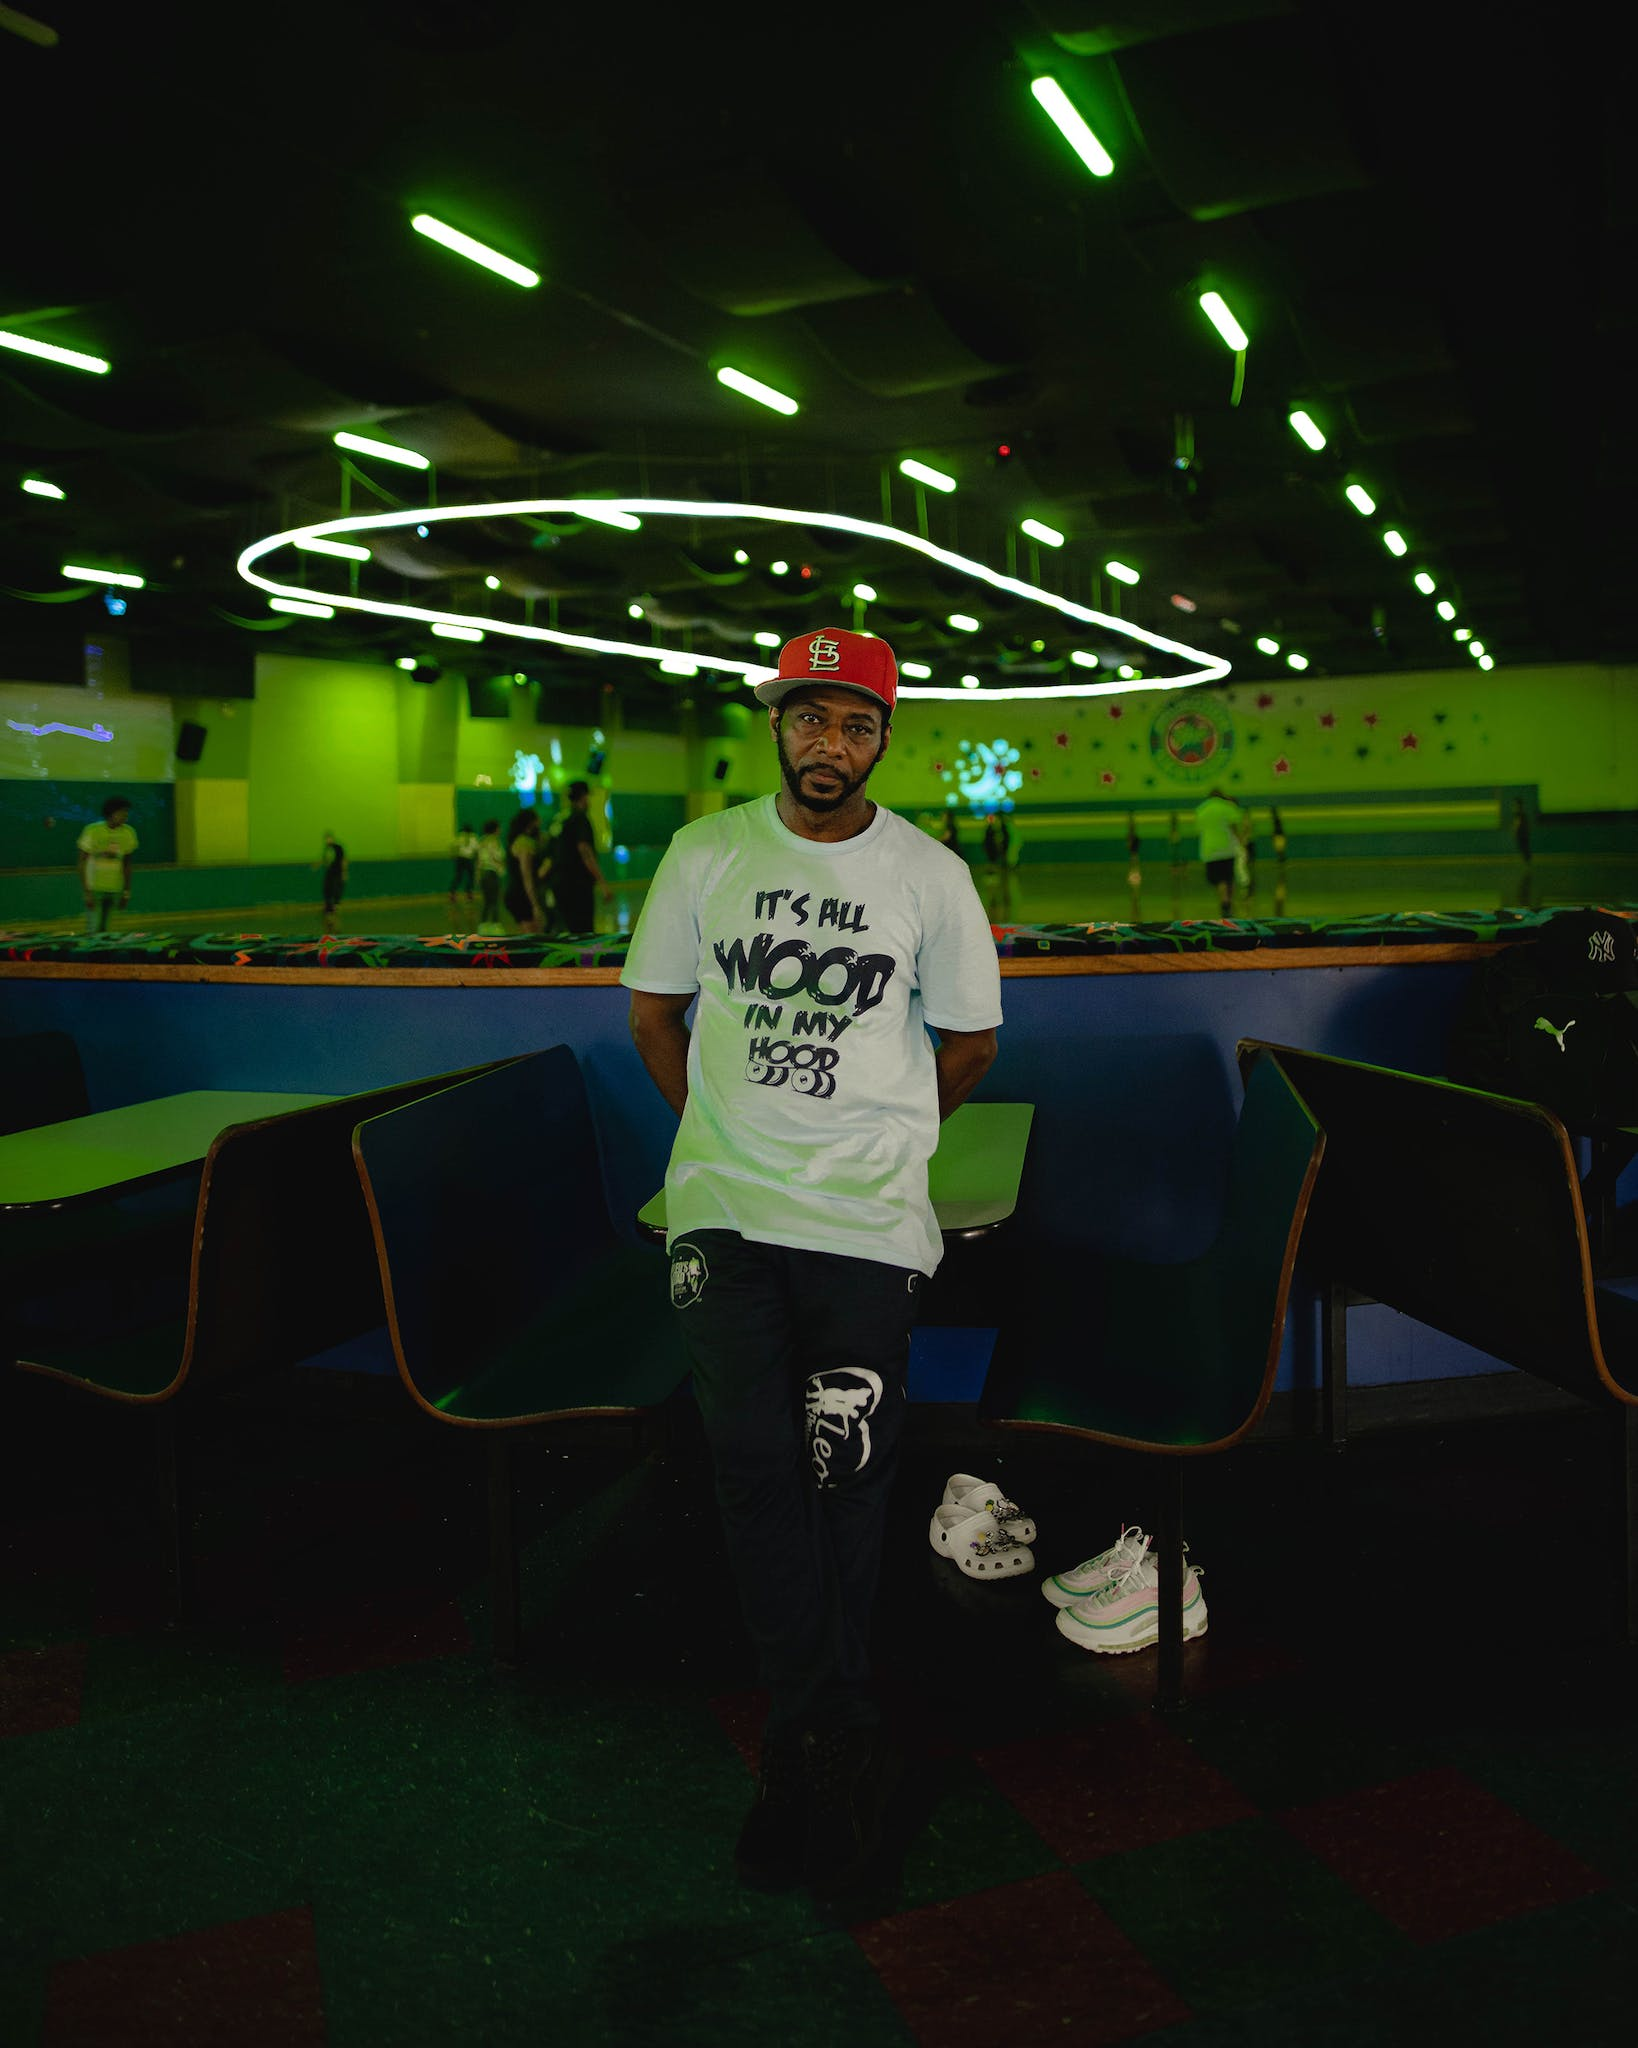 Leo White, famous for his ballroom skating, came from St. Louis for the Skate Jam.